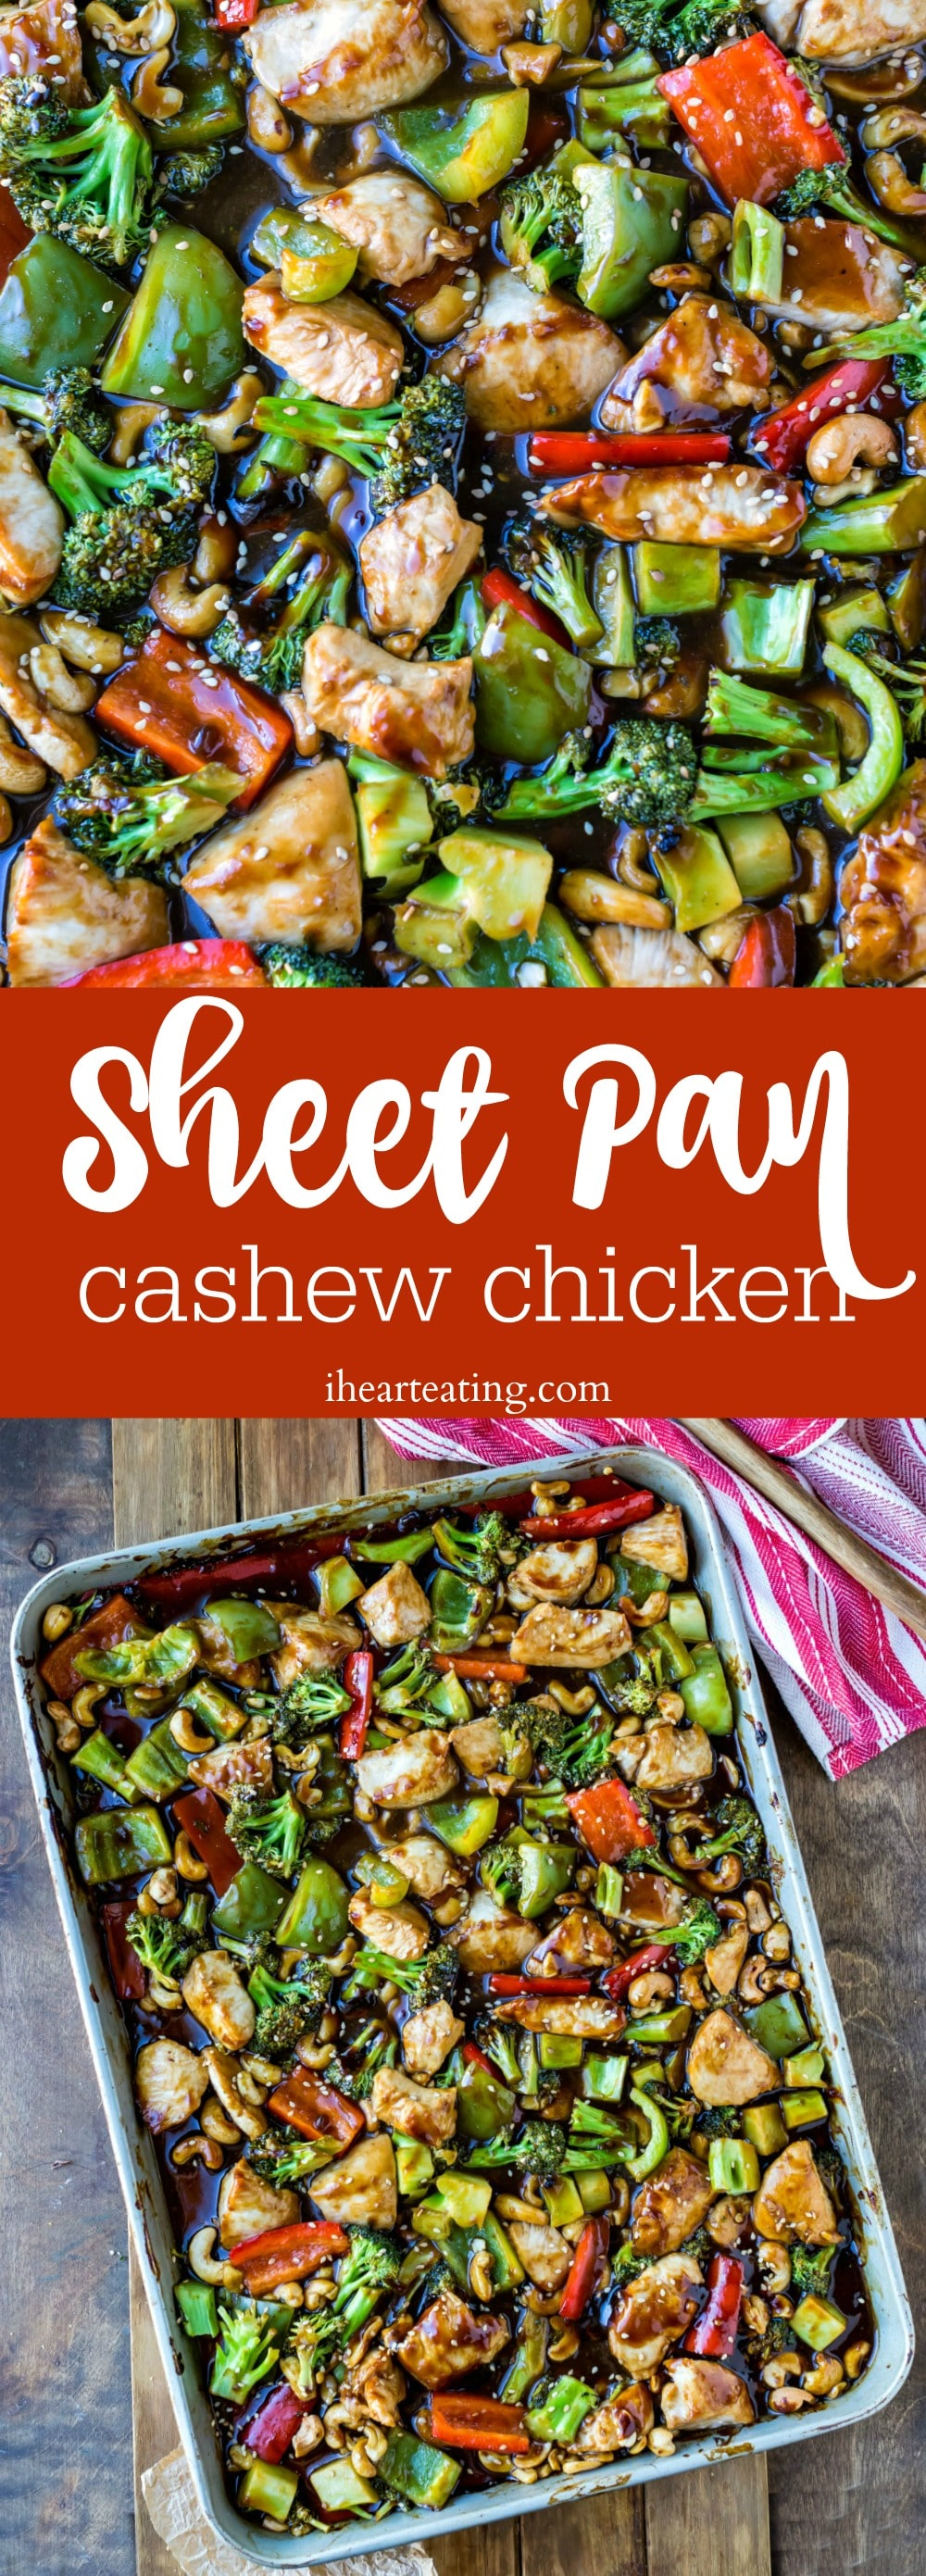 Easy dinner recipe! Sheet pan cashew chicken is a tasty 30 minute meal that's great for weeknights or for meal prep.